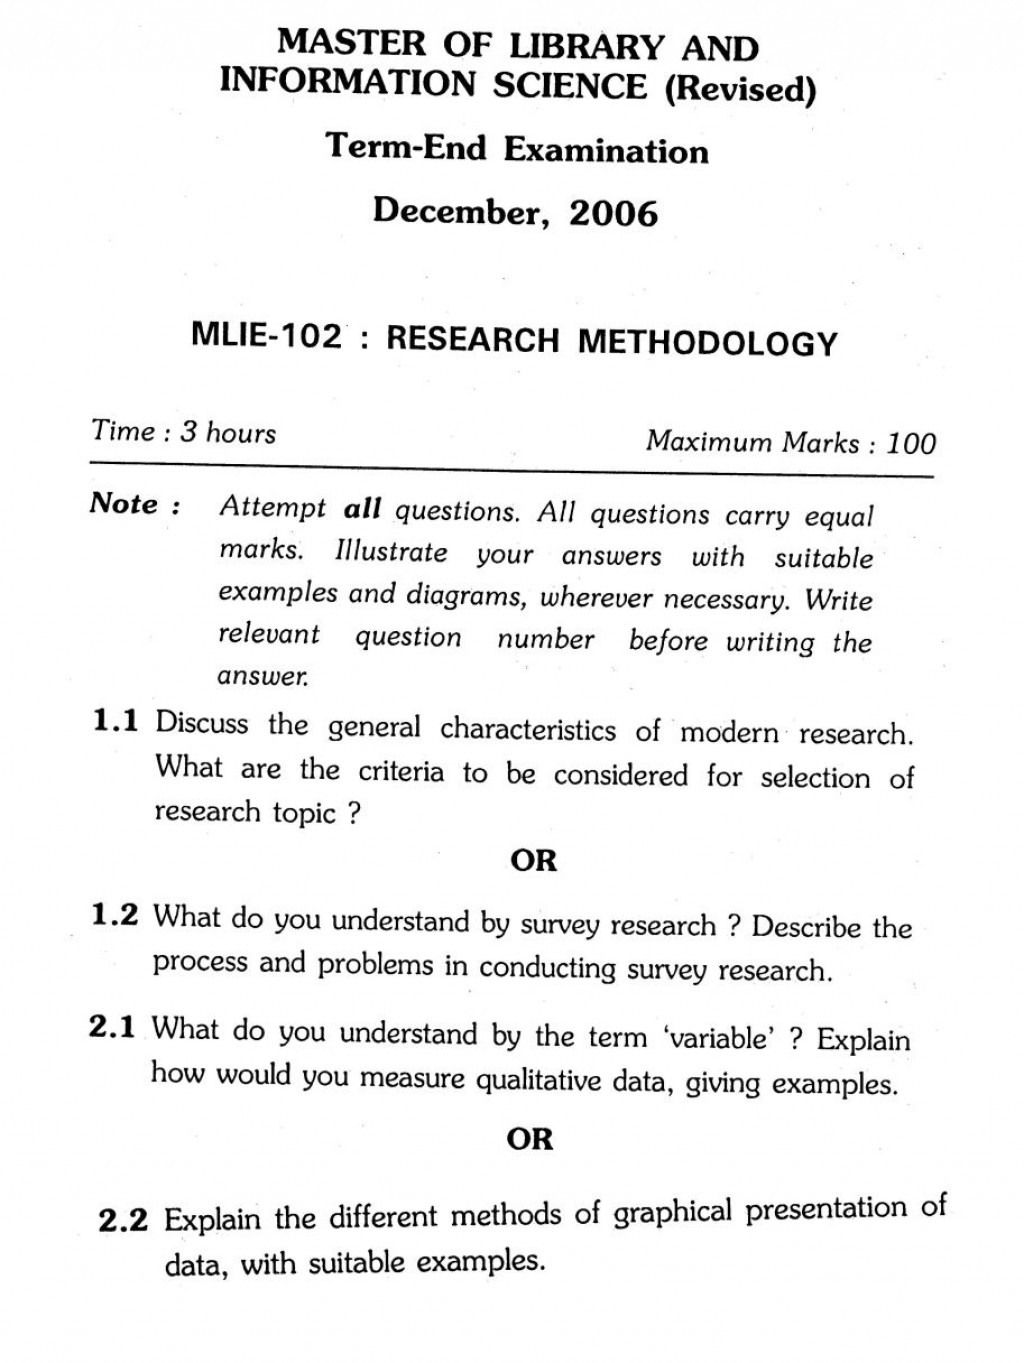 013 Ignou Master Of Library And Information Science Research Methodology Previous Years Question Papers Paper In Imposing Example Engineering Section Qualitative Large